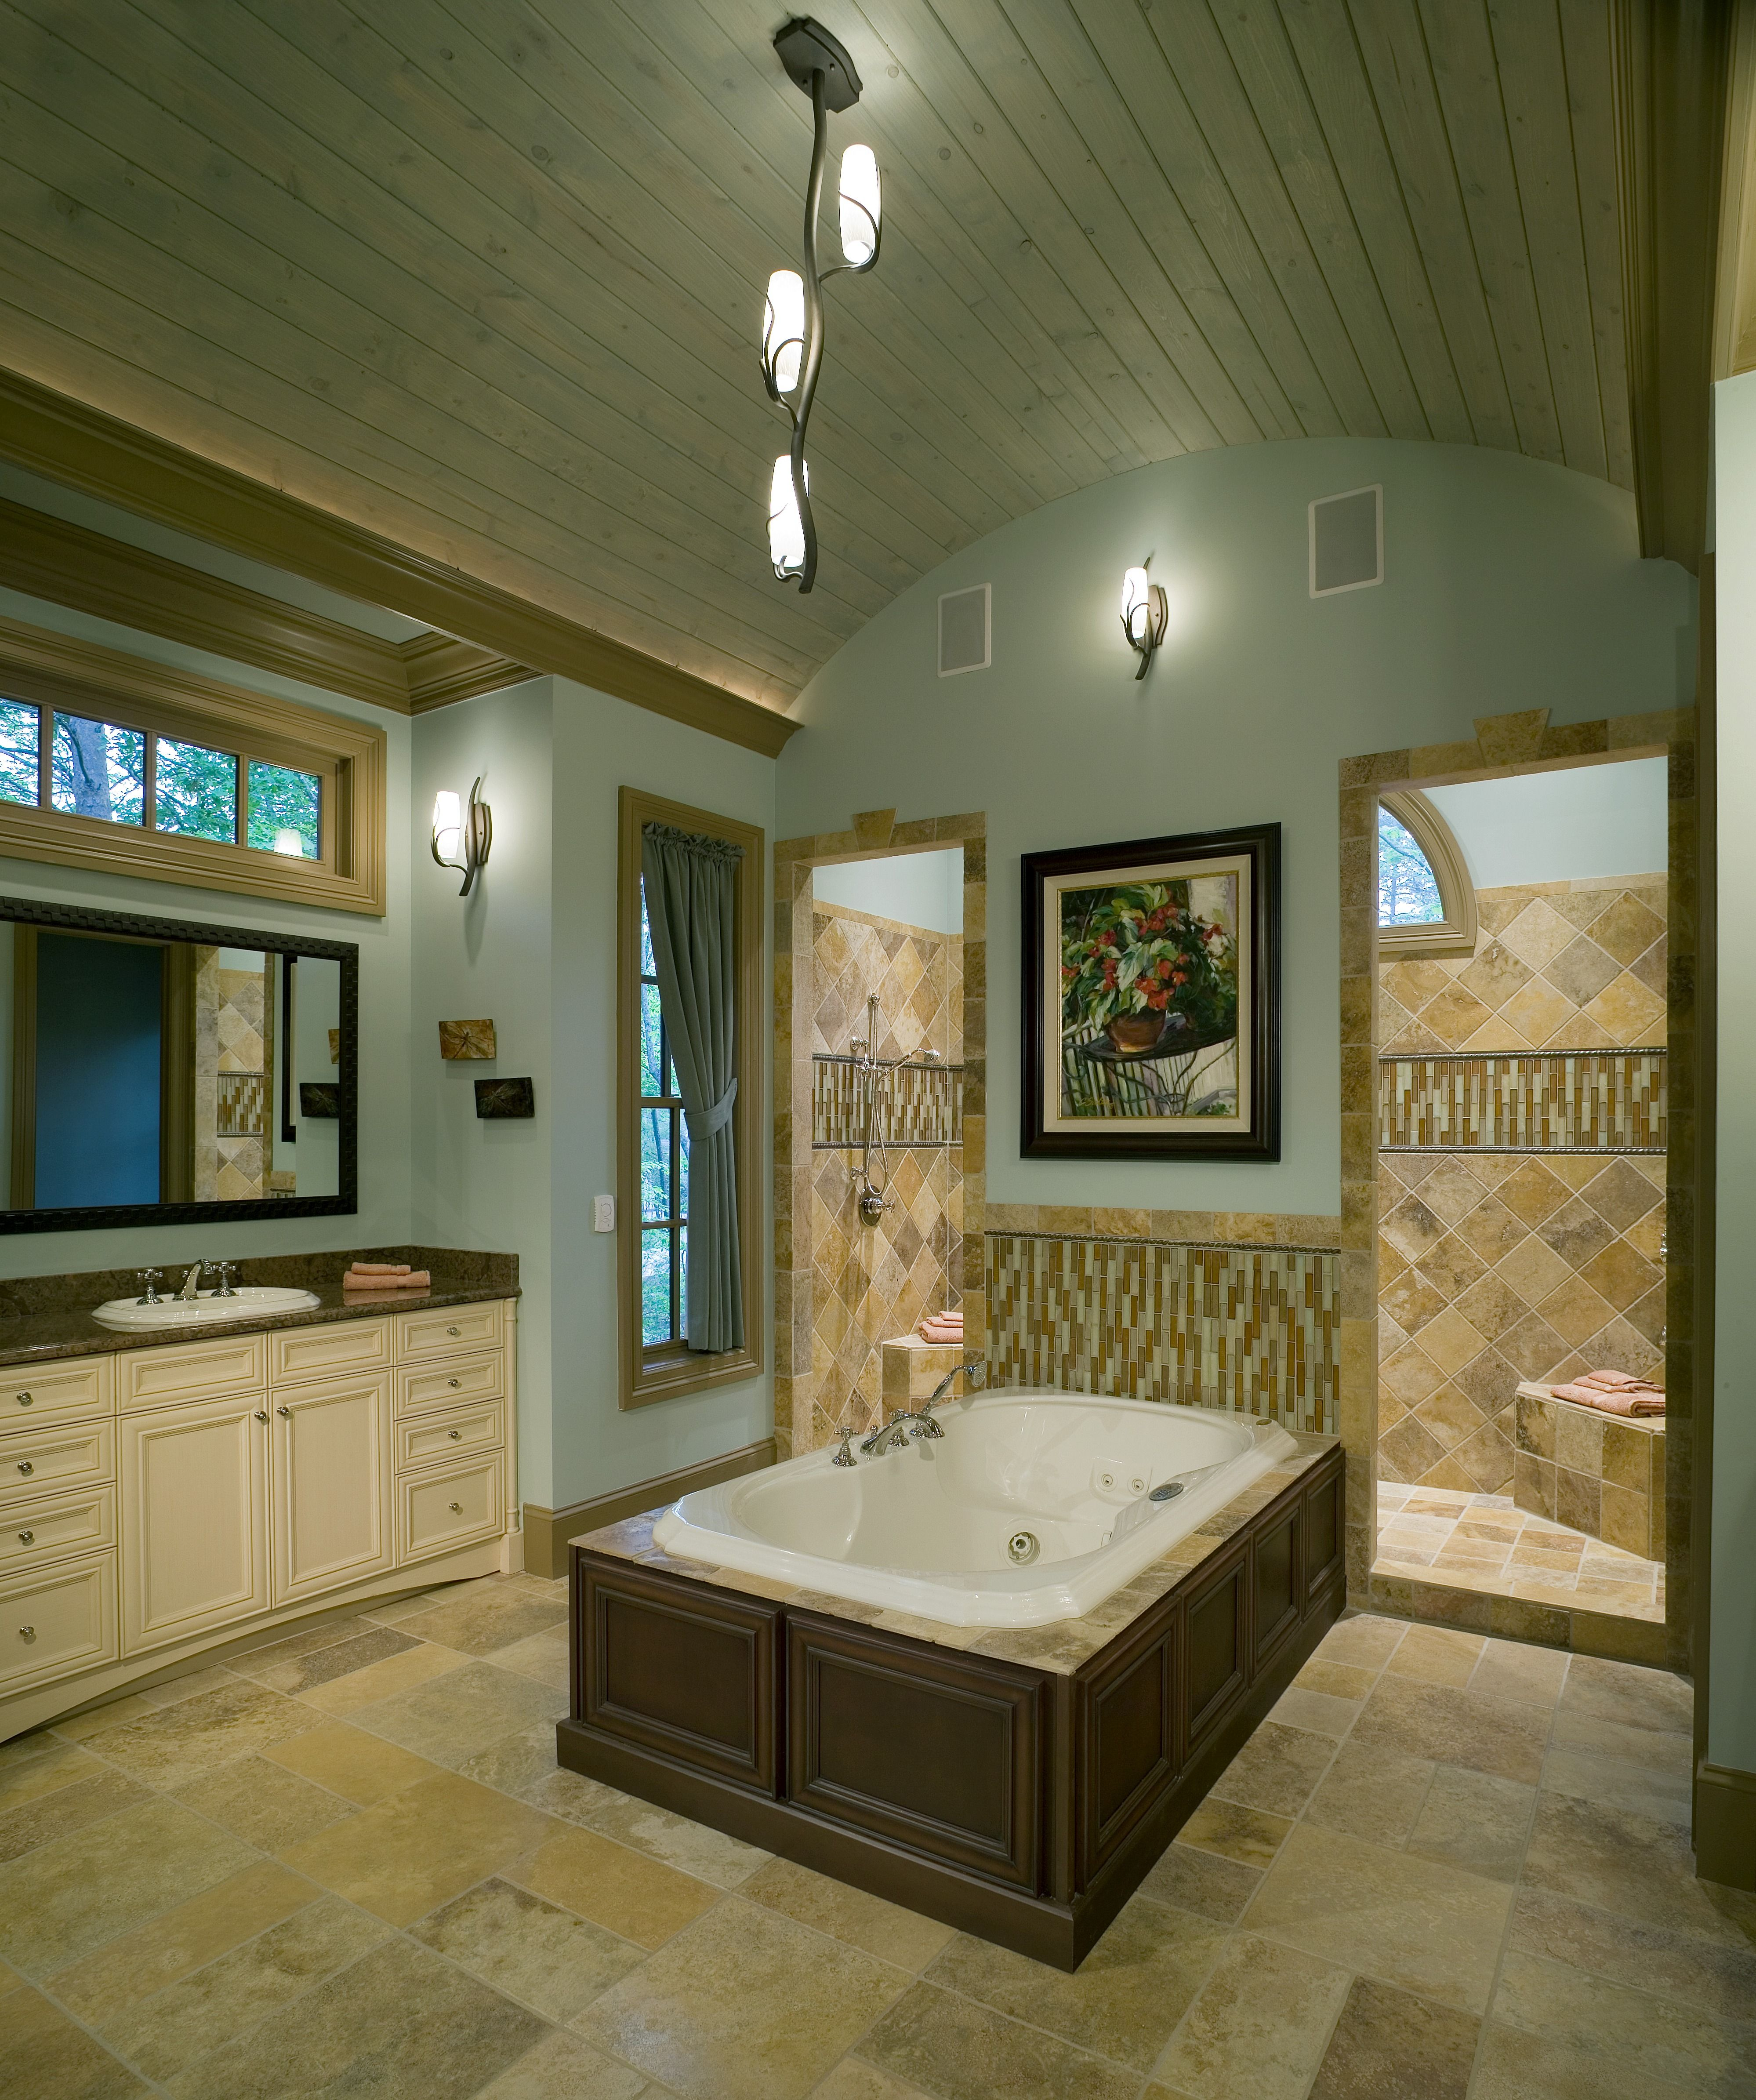 Bathroom Remodel Ideas Pinterest: 3 DIY Bathroom Remodel Ideas That Make A Difference